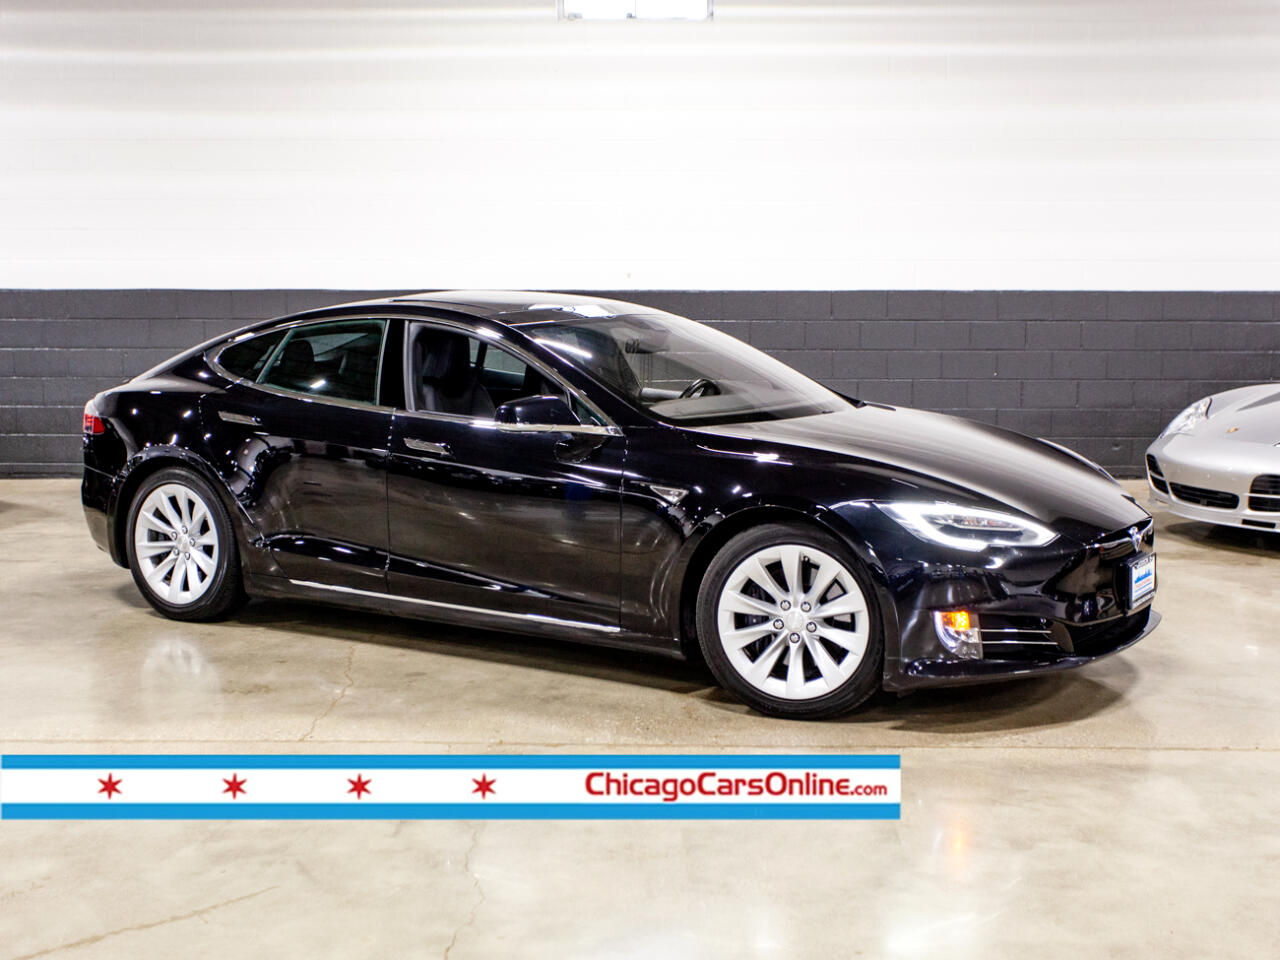 2016 Tesla Model S 2016.5 4dr Sdn AWD 75D